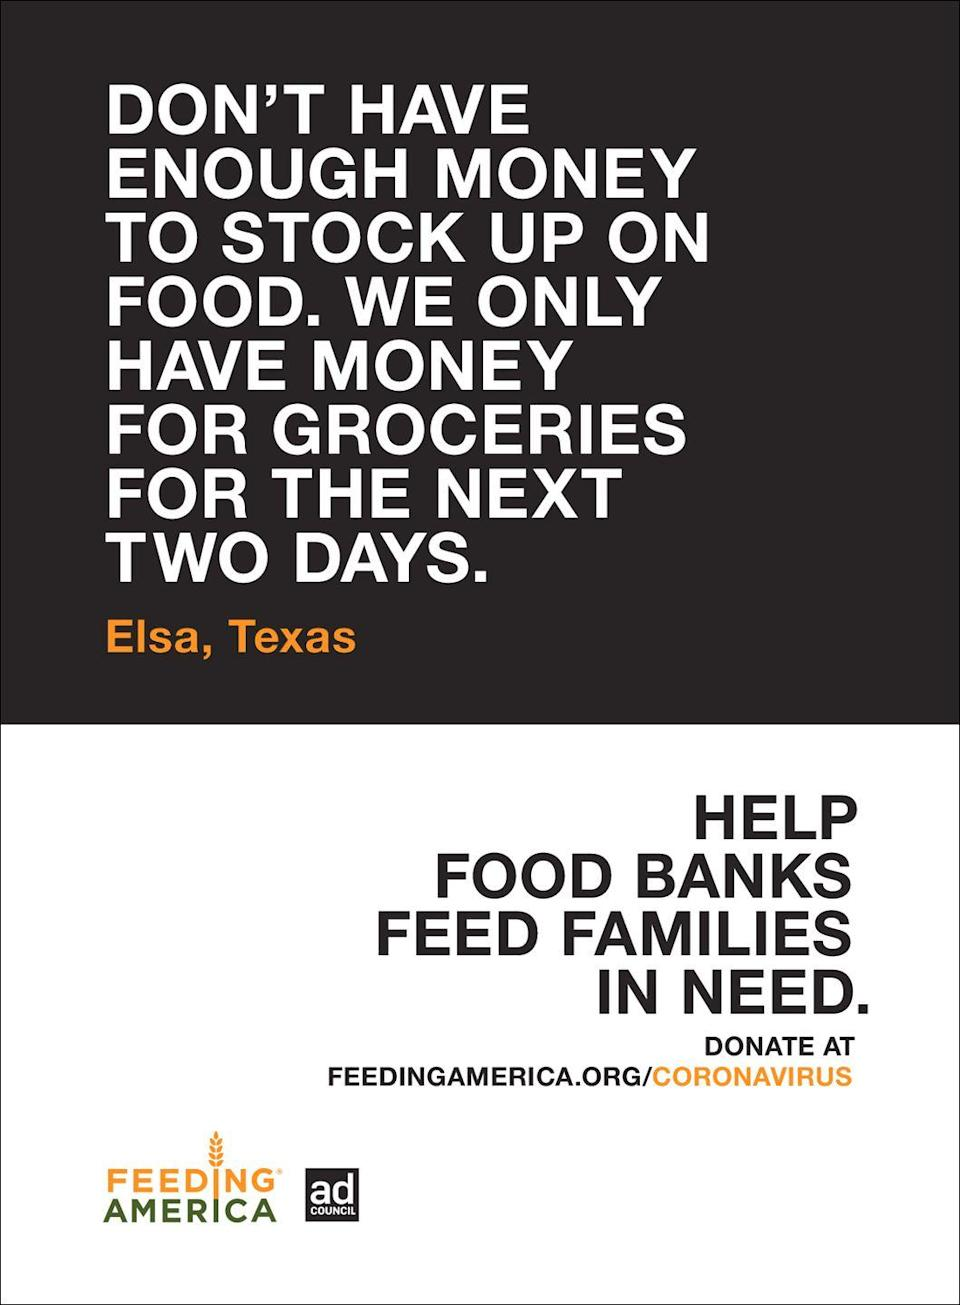 """<p><em>""""Don't have enough money to stock up on food. We only have money for groceries for the next two days. """"—Elsa, Texas </em></p><p>Help book banks feed families in need. Donate <a href=""""https://www.feedingamerica.org/coronavirus.%20%EF%BB%BF"""" rel=""""nofollow noopener"""" target=""""_blank"""" data-ylk=""""slk:here."""" class=""""link rapid-noclick-resp"""">here.</a> </p>"""